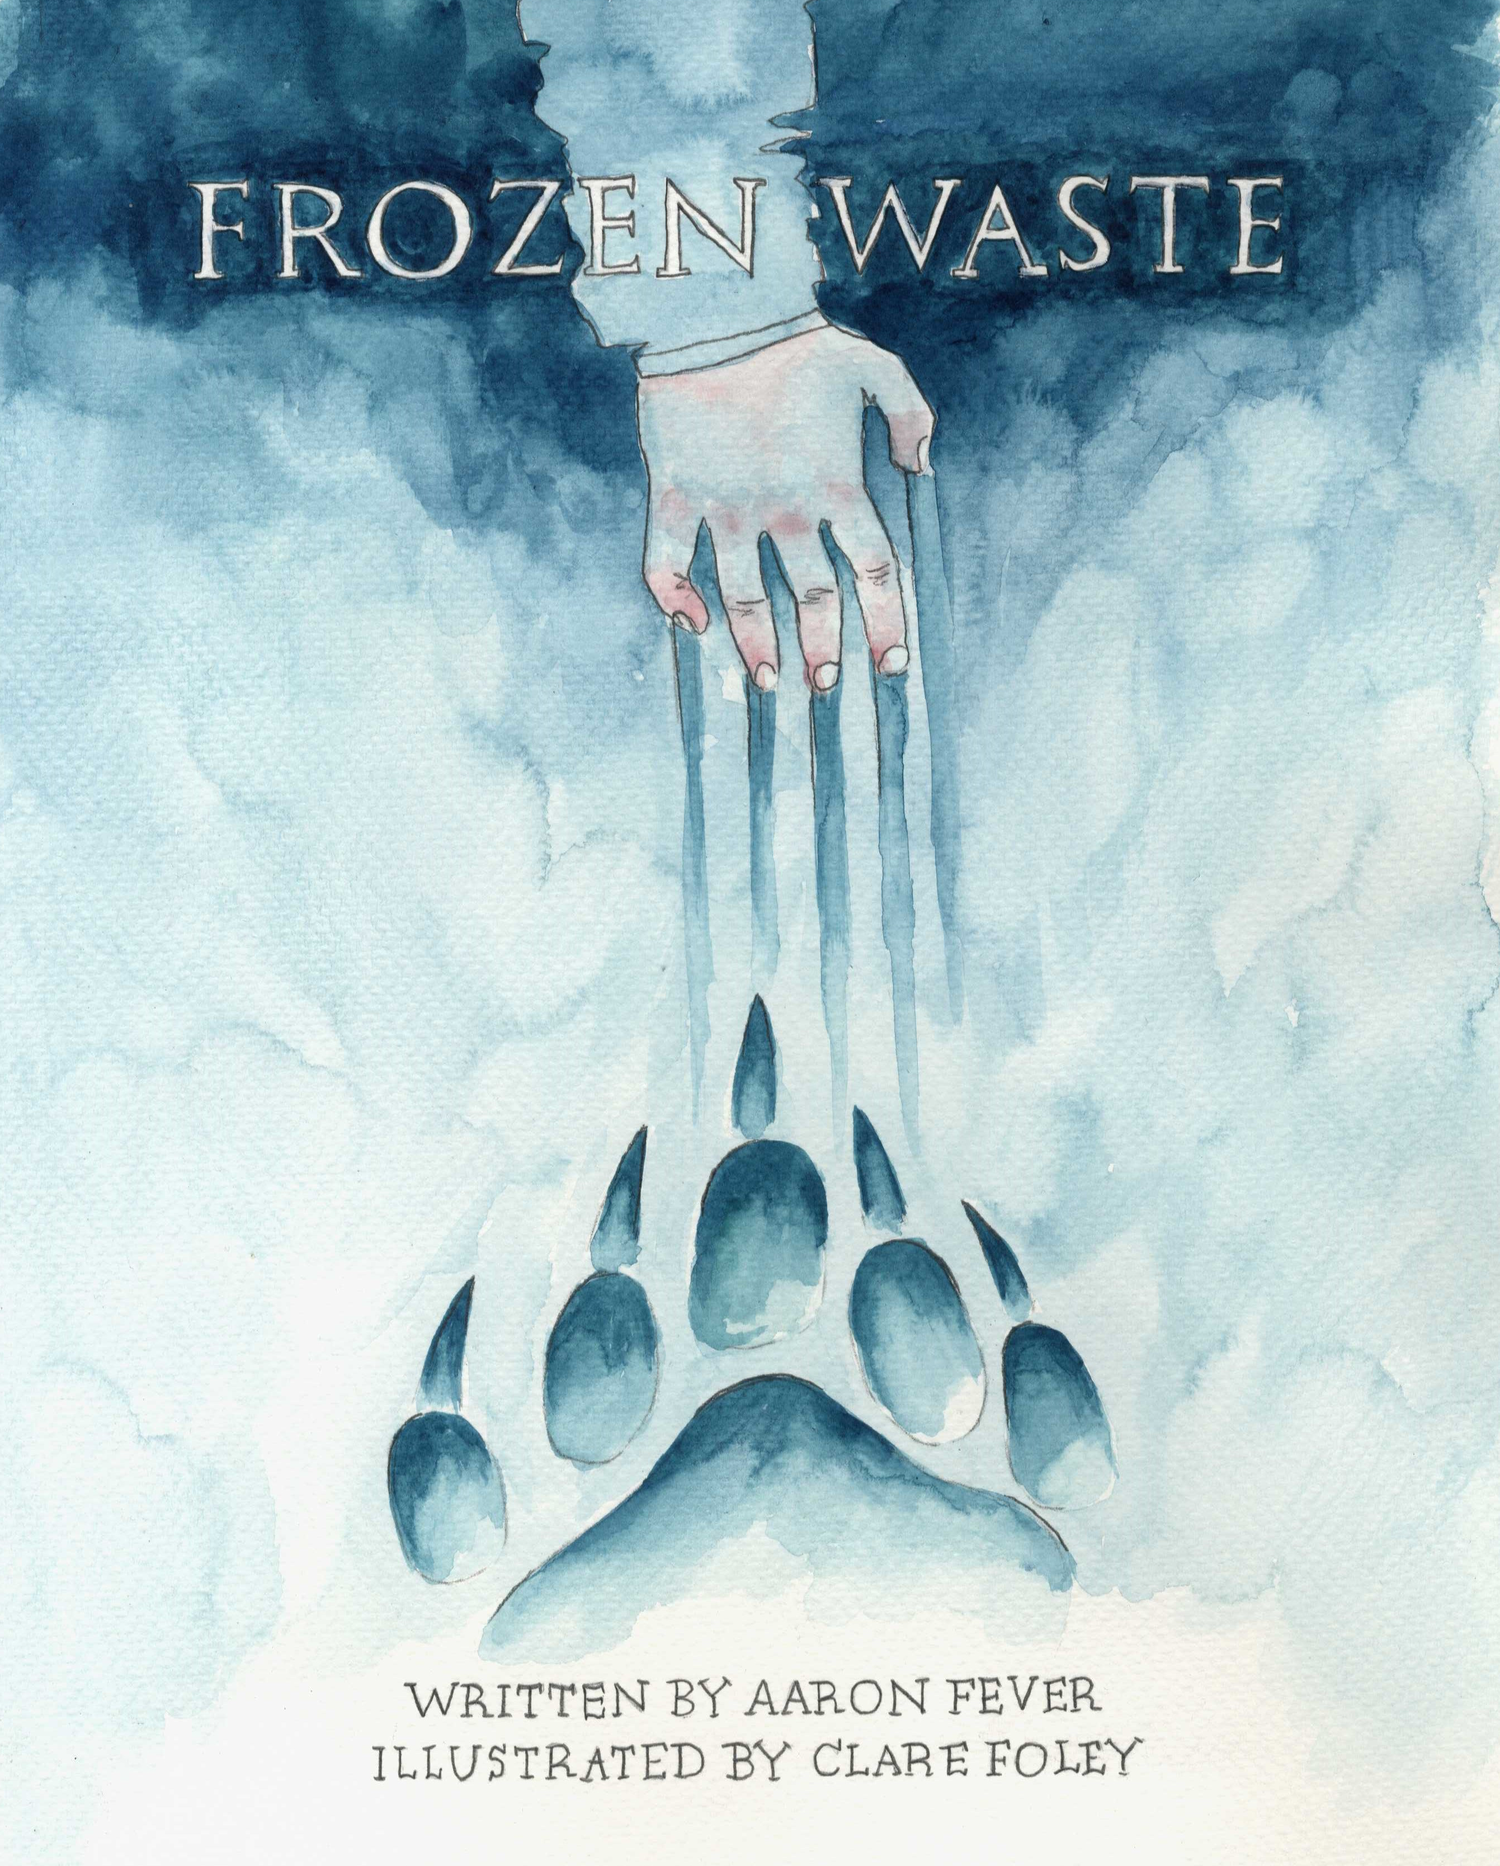 Image of Frozen Waste